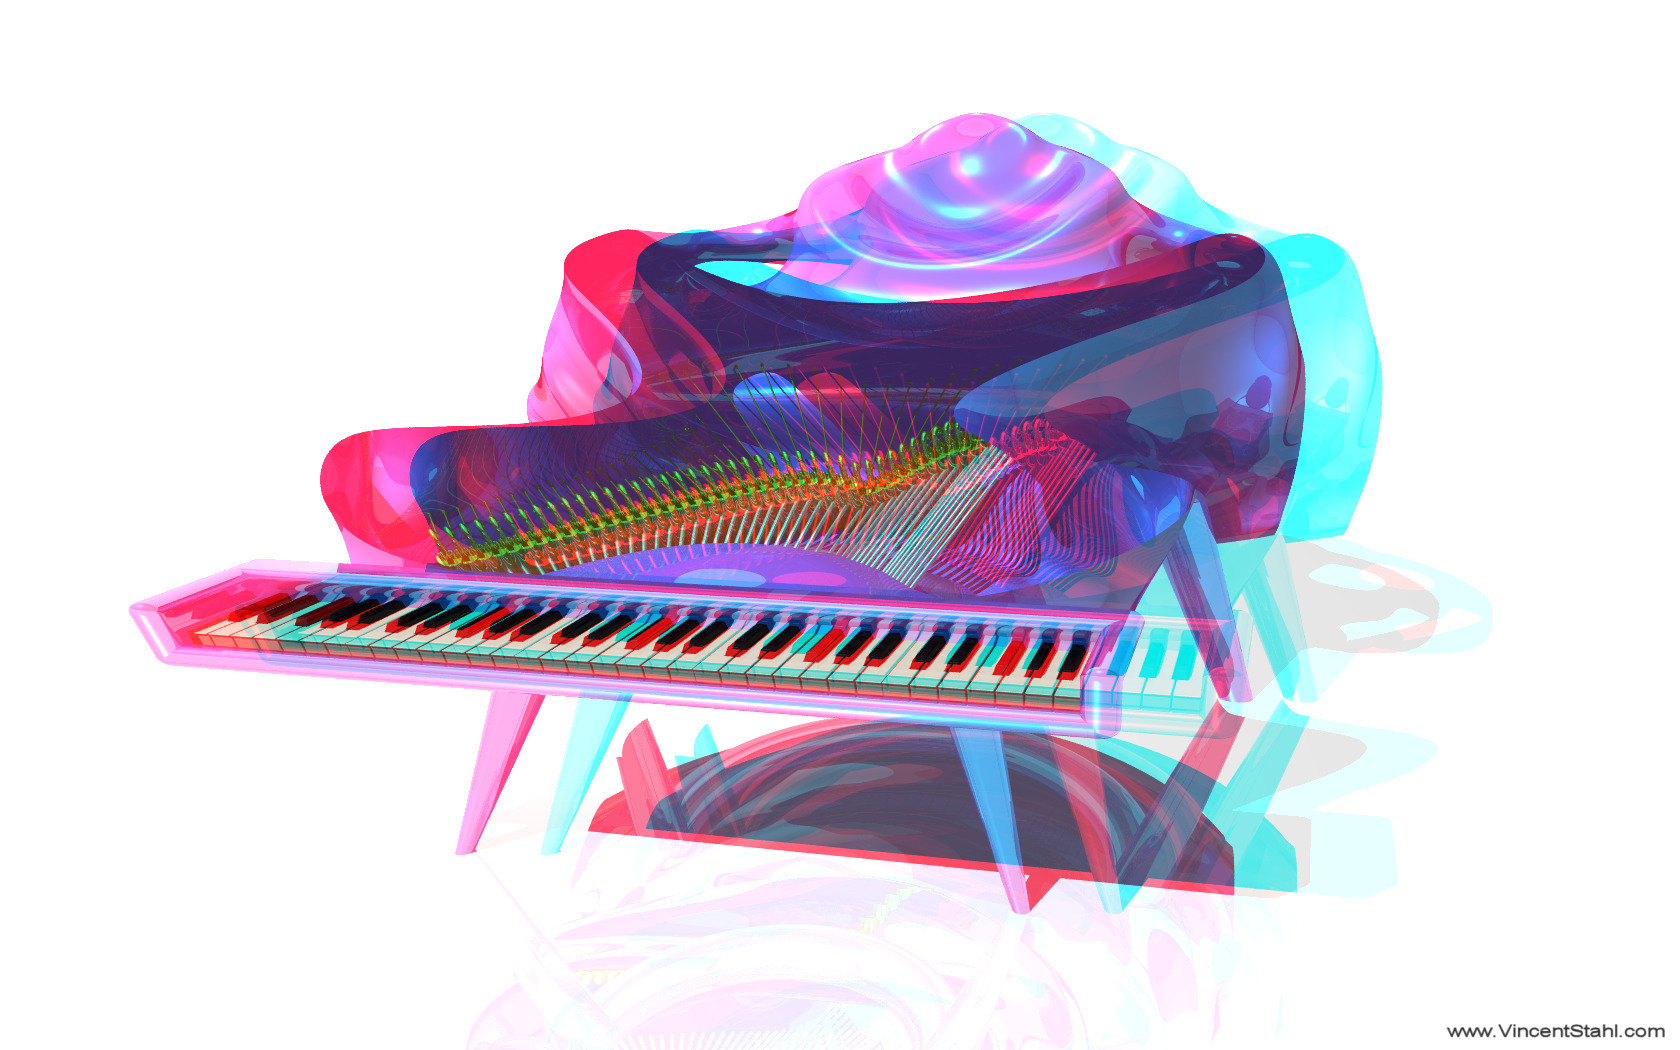 Manta Piano - 3D stereo anaglyph color